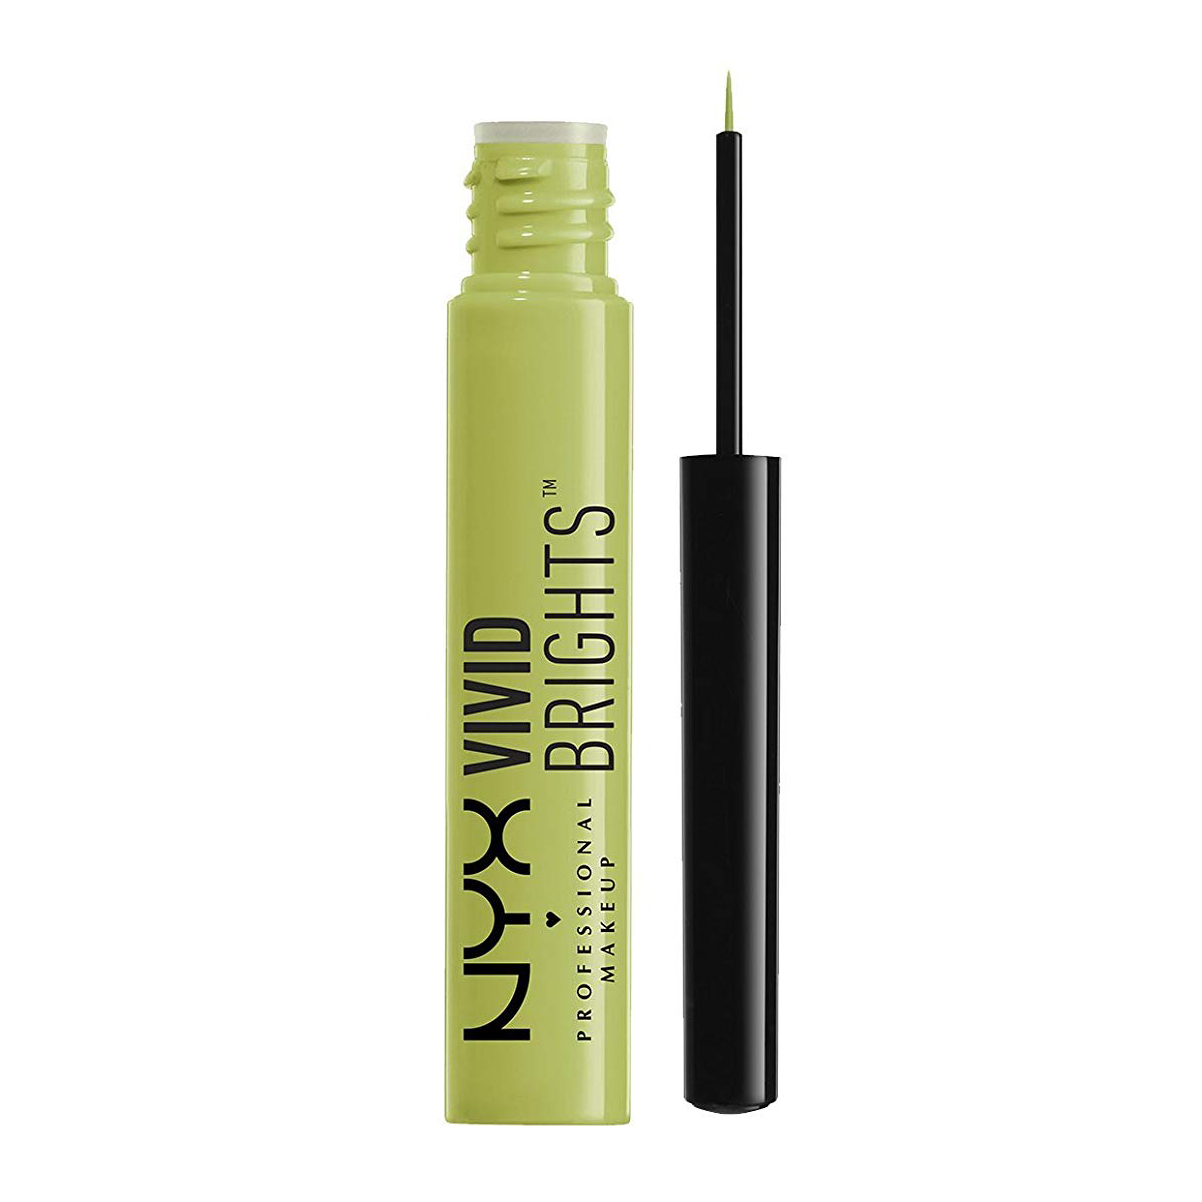 nyx-vivid-brights-mascara-escape.jpg